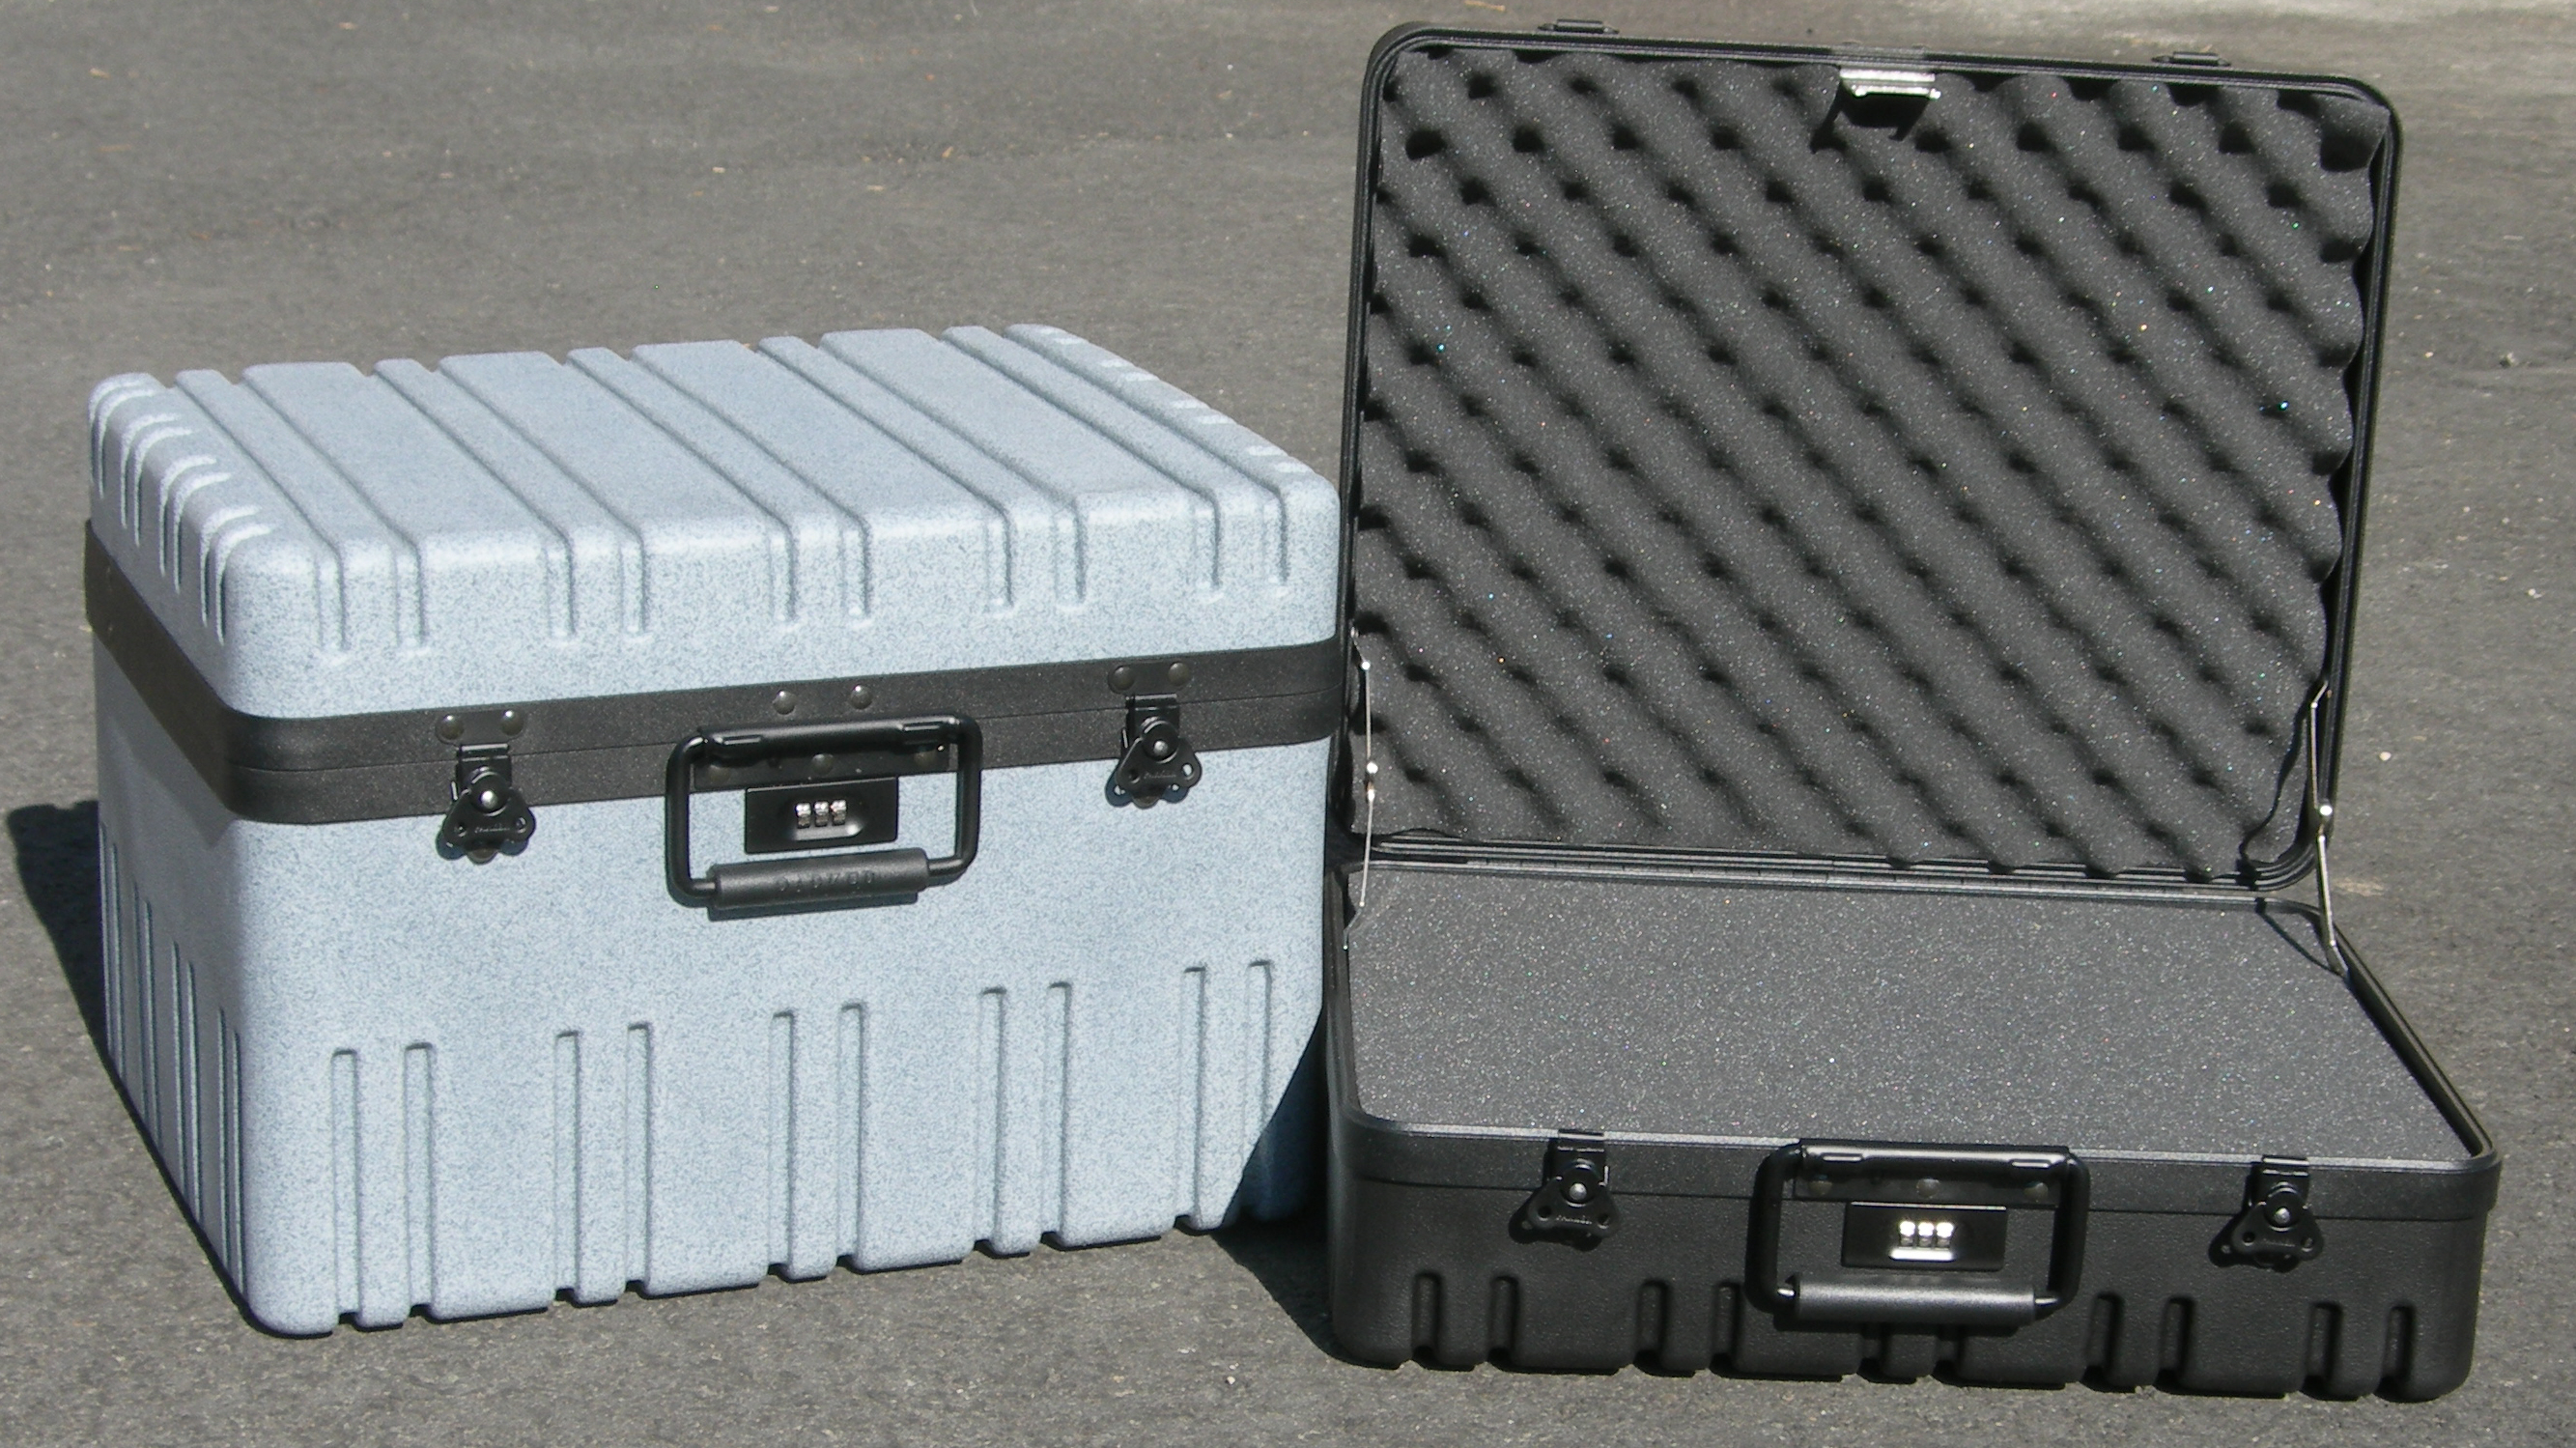 2RR toolkit cases, foam filled or empty.